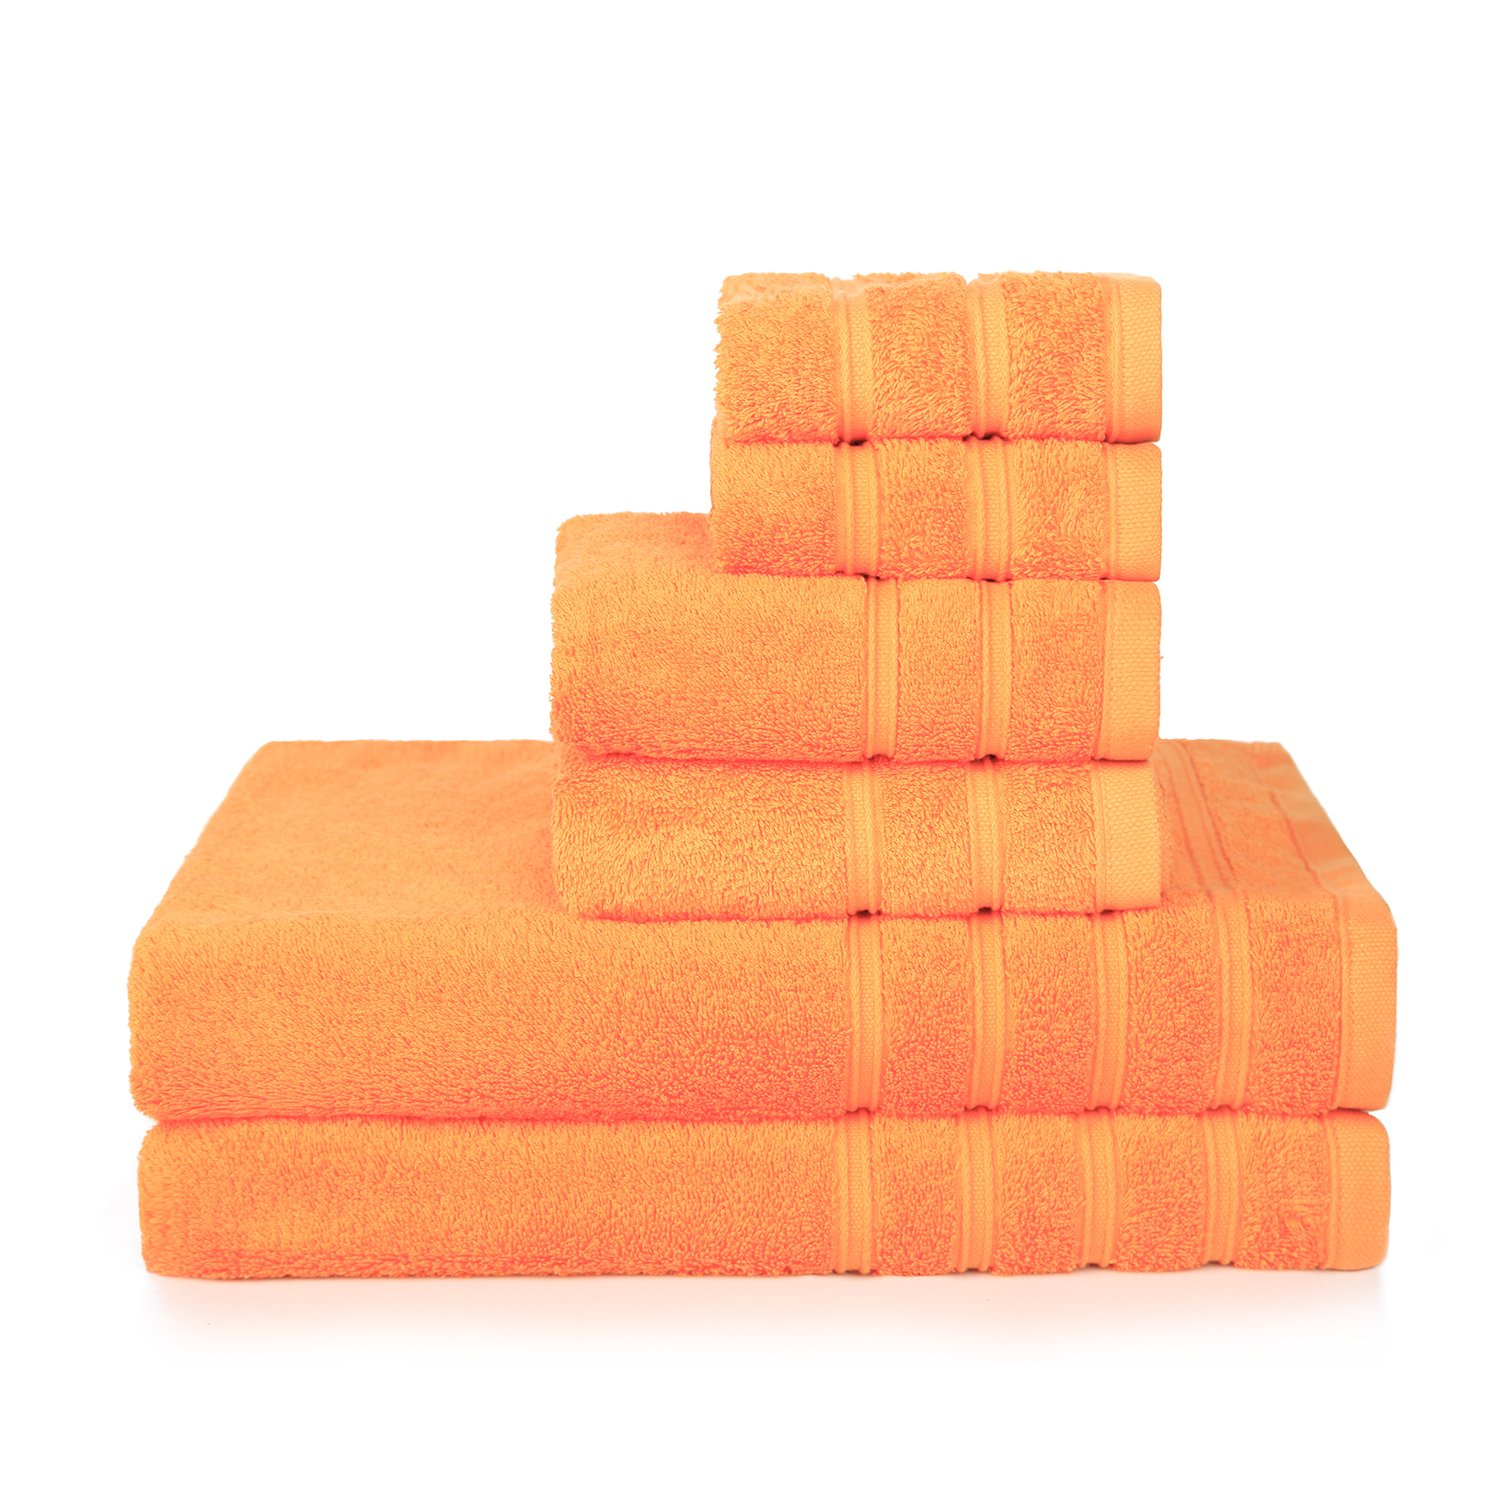 PROMIC 100% Cotton Bath Towel Set, 6 Piece Includes 2 Bath Towels, 2 Hand Towels, and 2 Washcloths - 500GSM, Highly Absorbent and Softness, Fade-Resistant, Orange